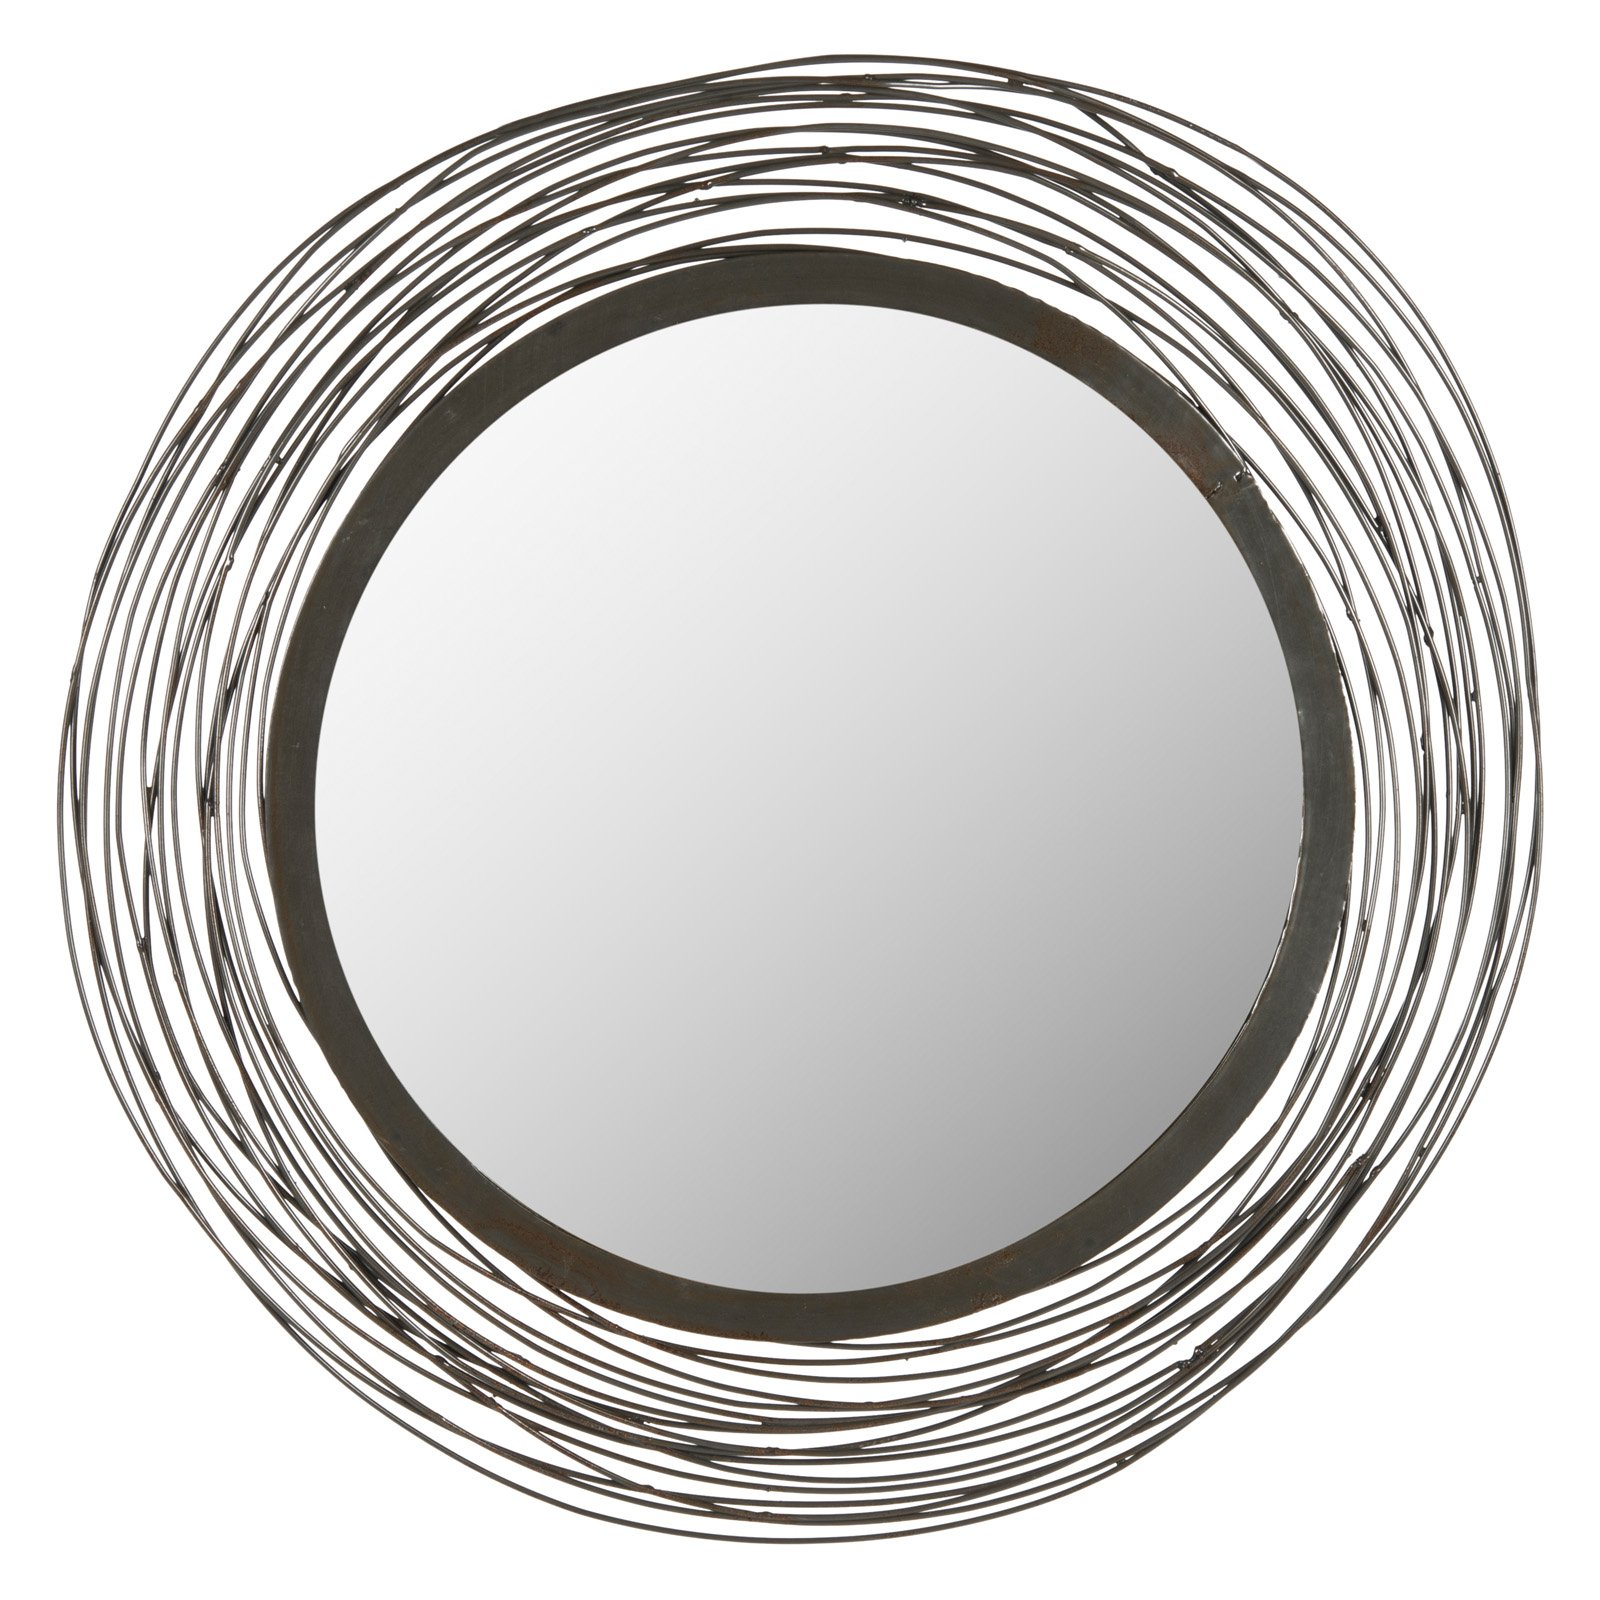 Safavieh Wired Wall Mirror, Natural by Safavieh